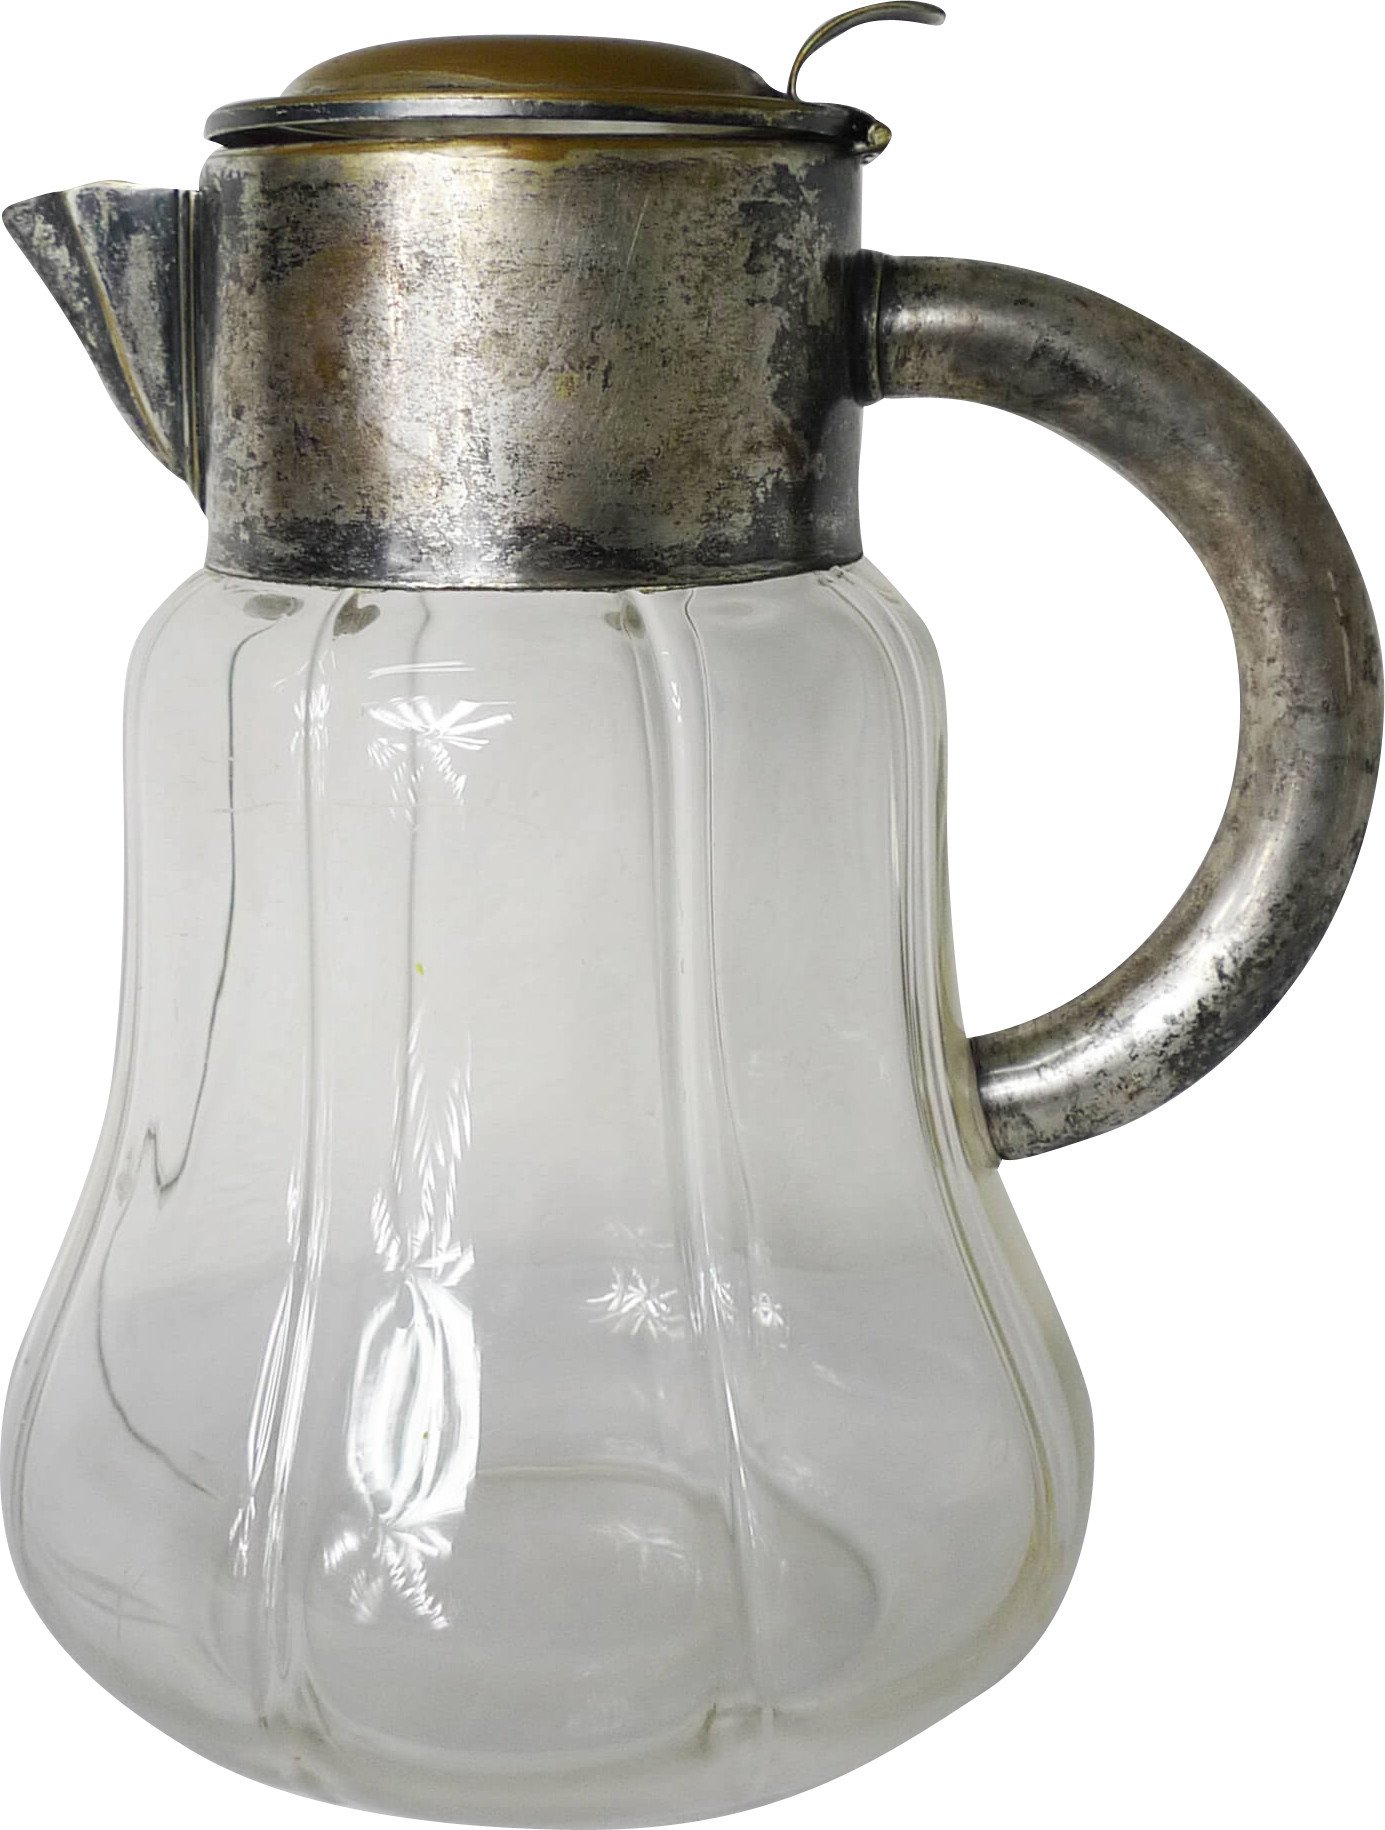 Jug, Germany, 1930s